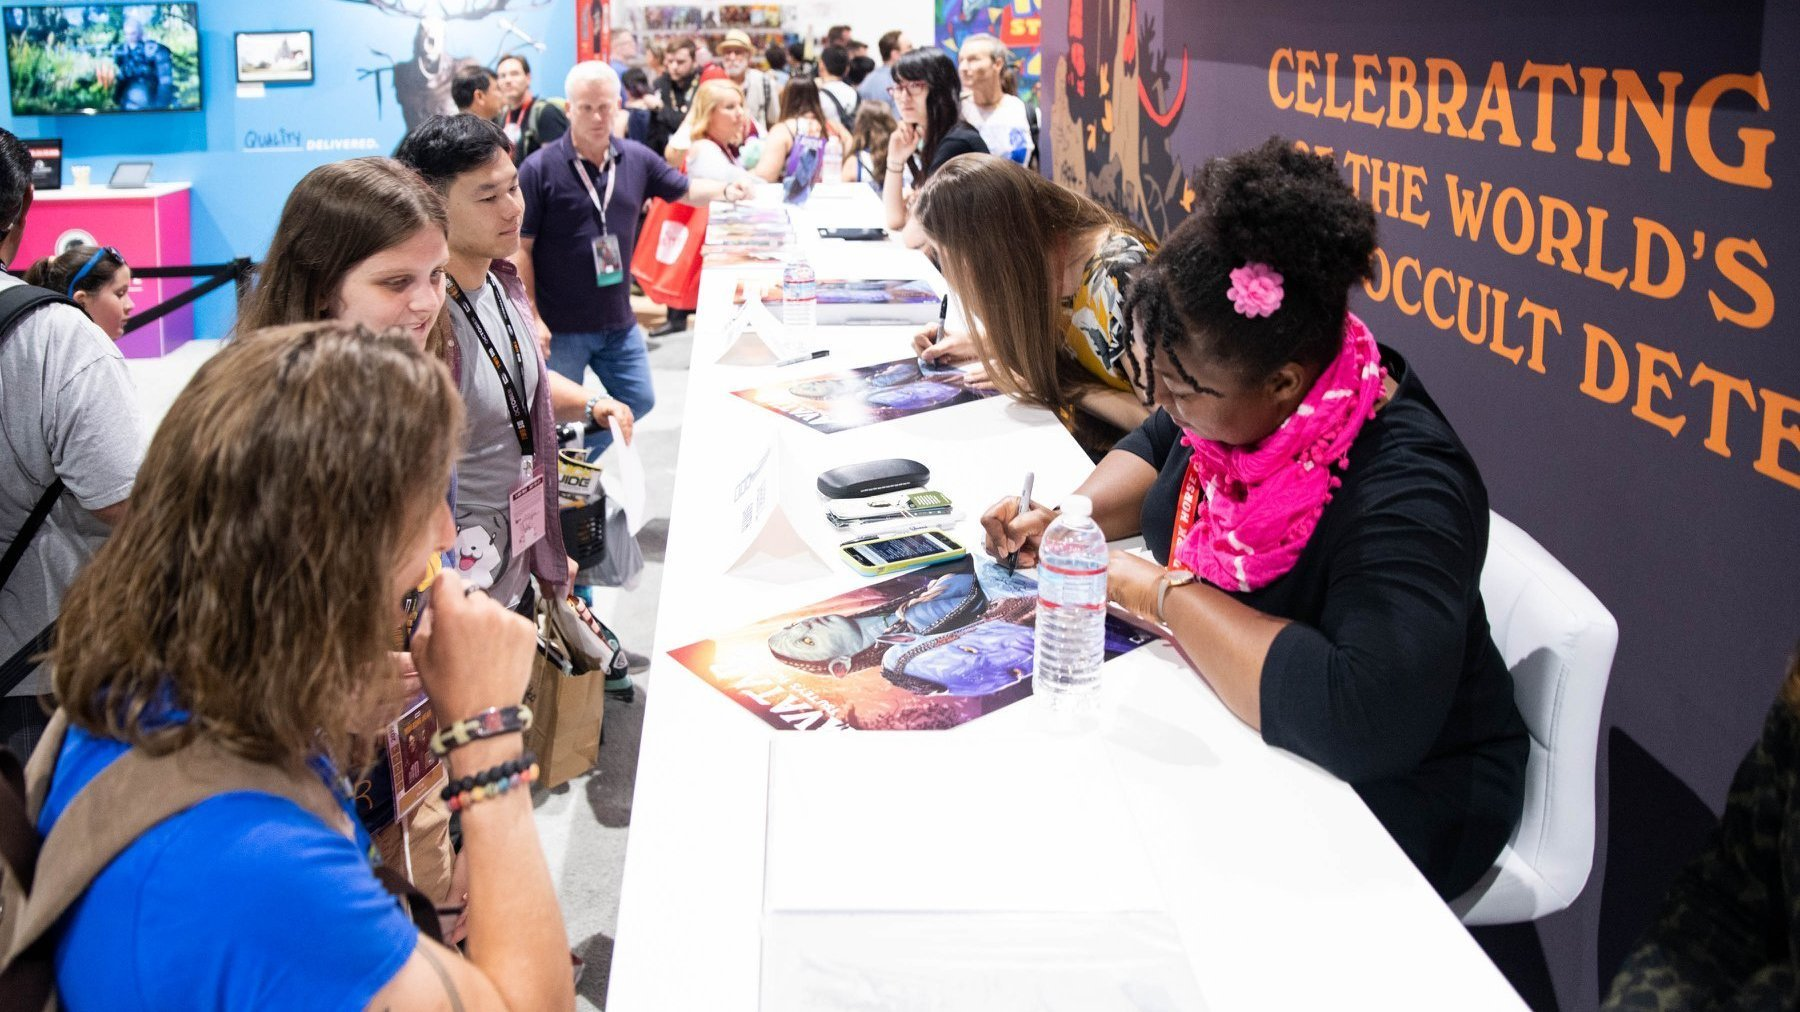 Shea and Sherri signing comics and prints for Avatar fans